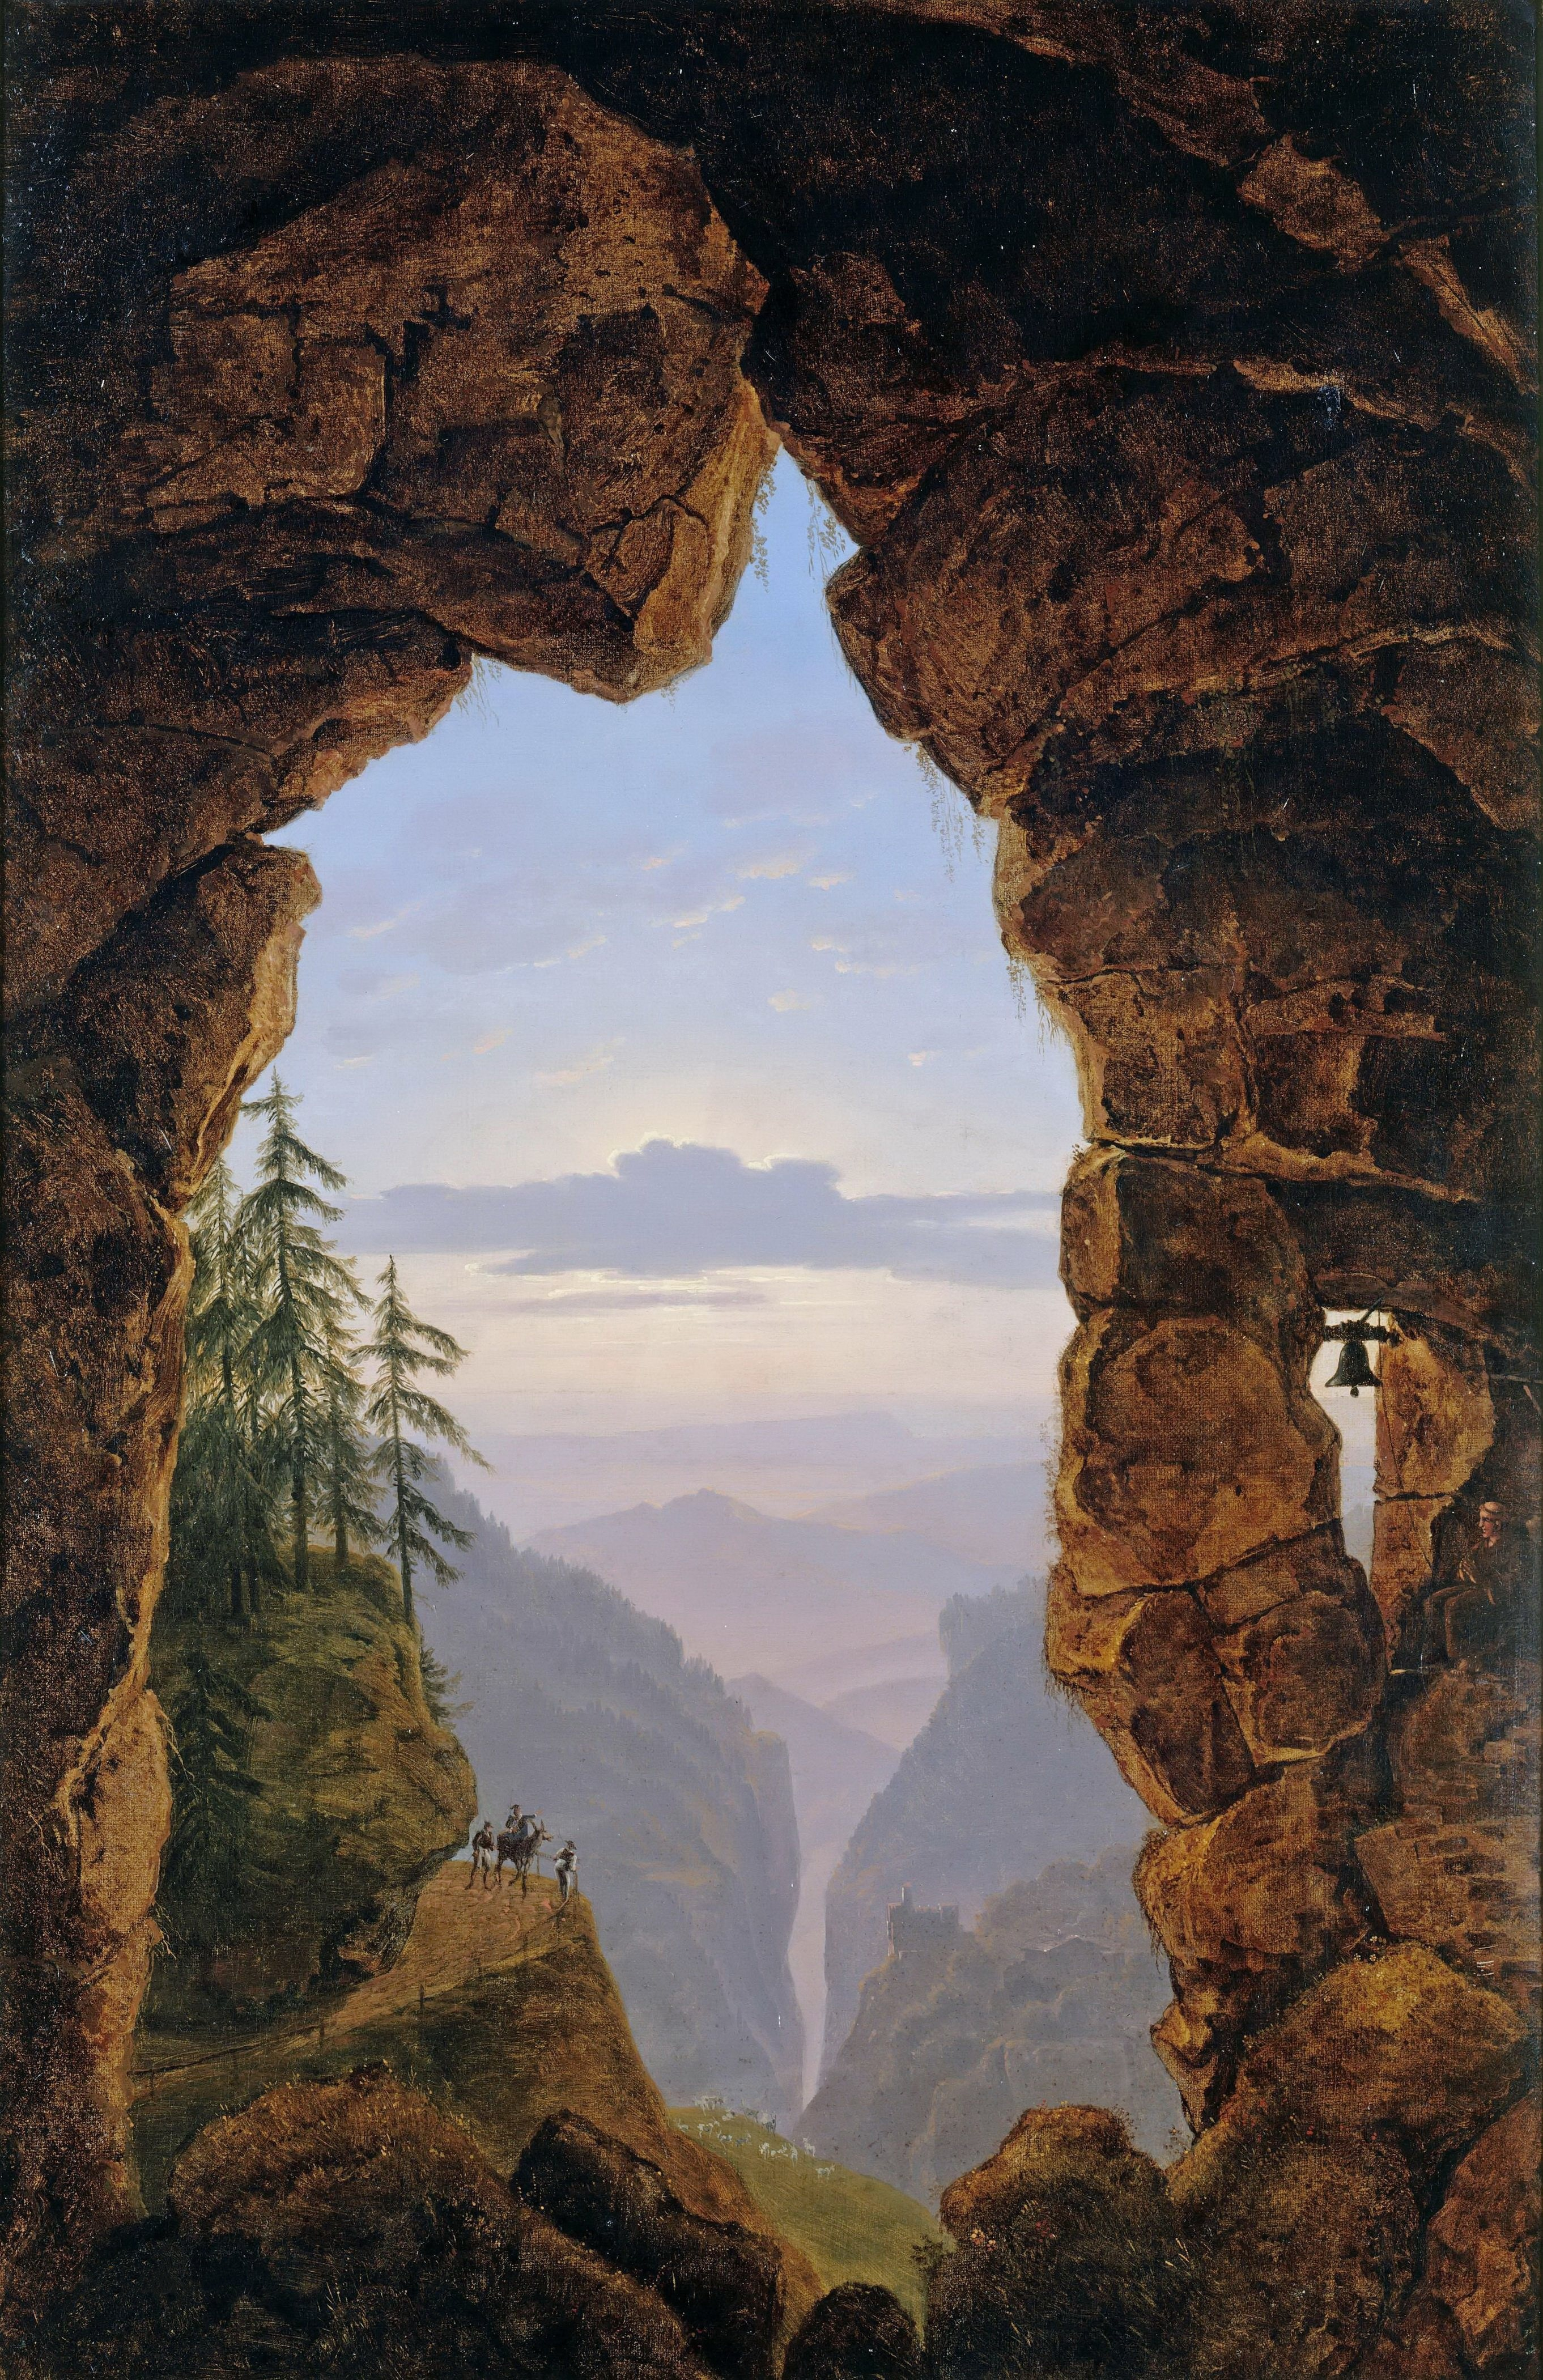 LE MUSEE DU FORUM - Page 3 Karl_Friedrich_Schinkel_-_The_gate_In_The_Rocks